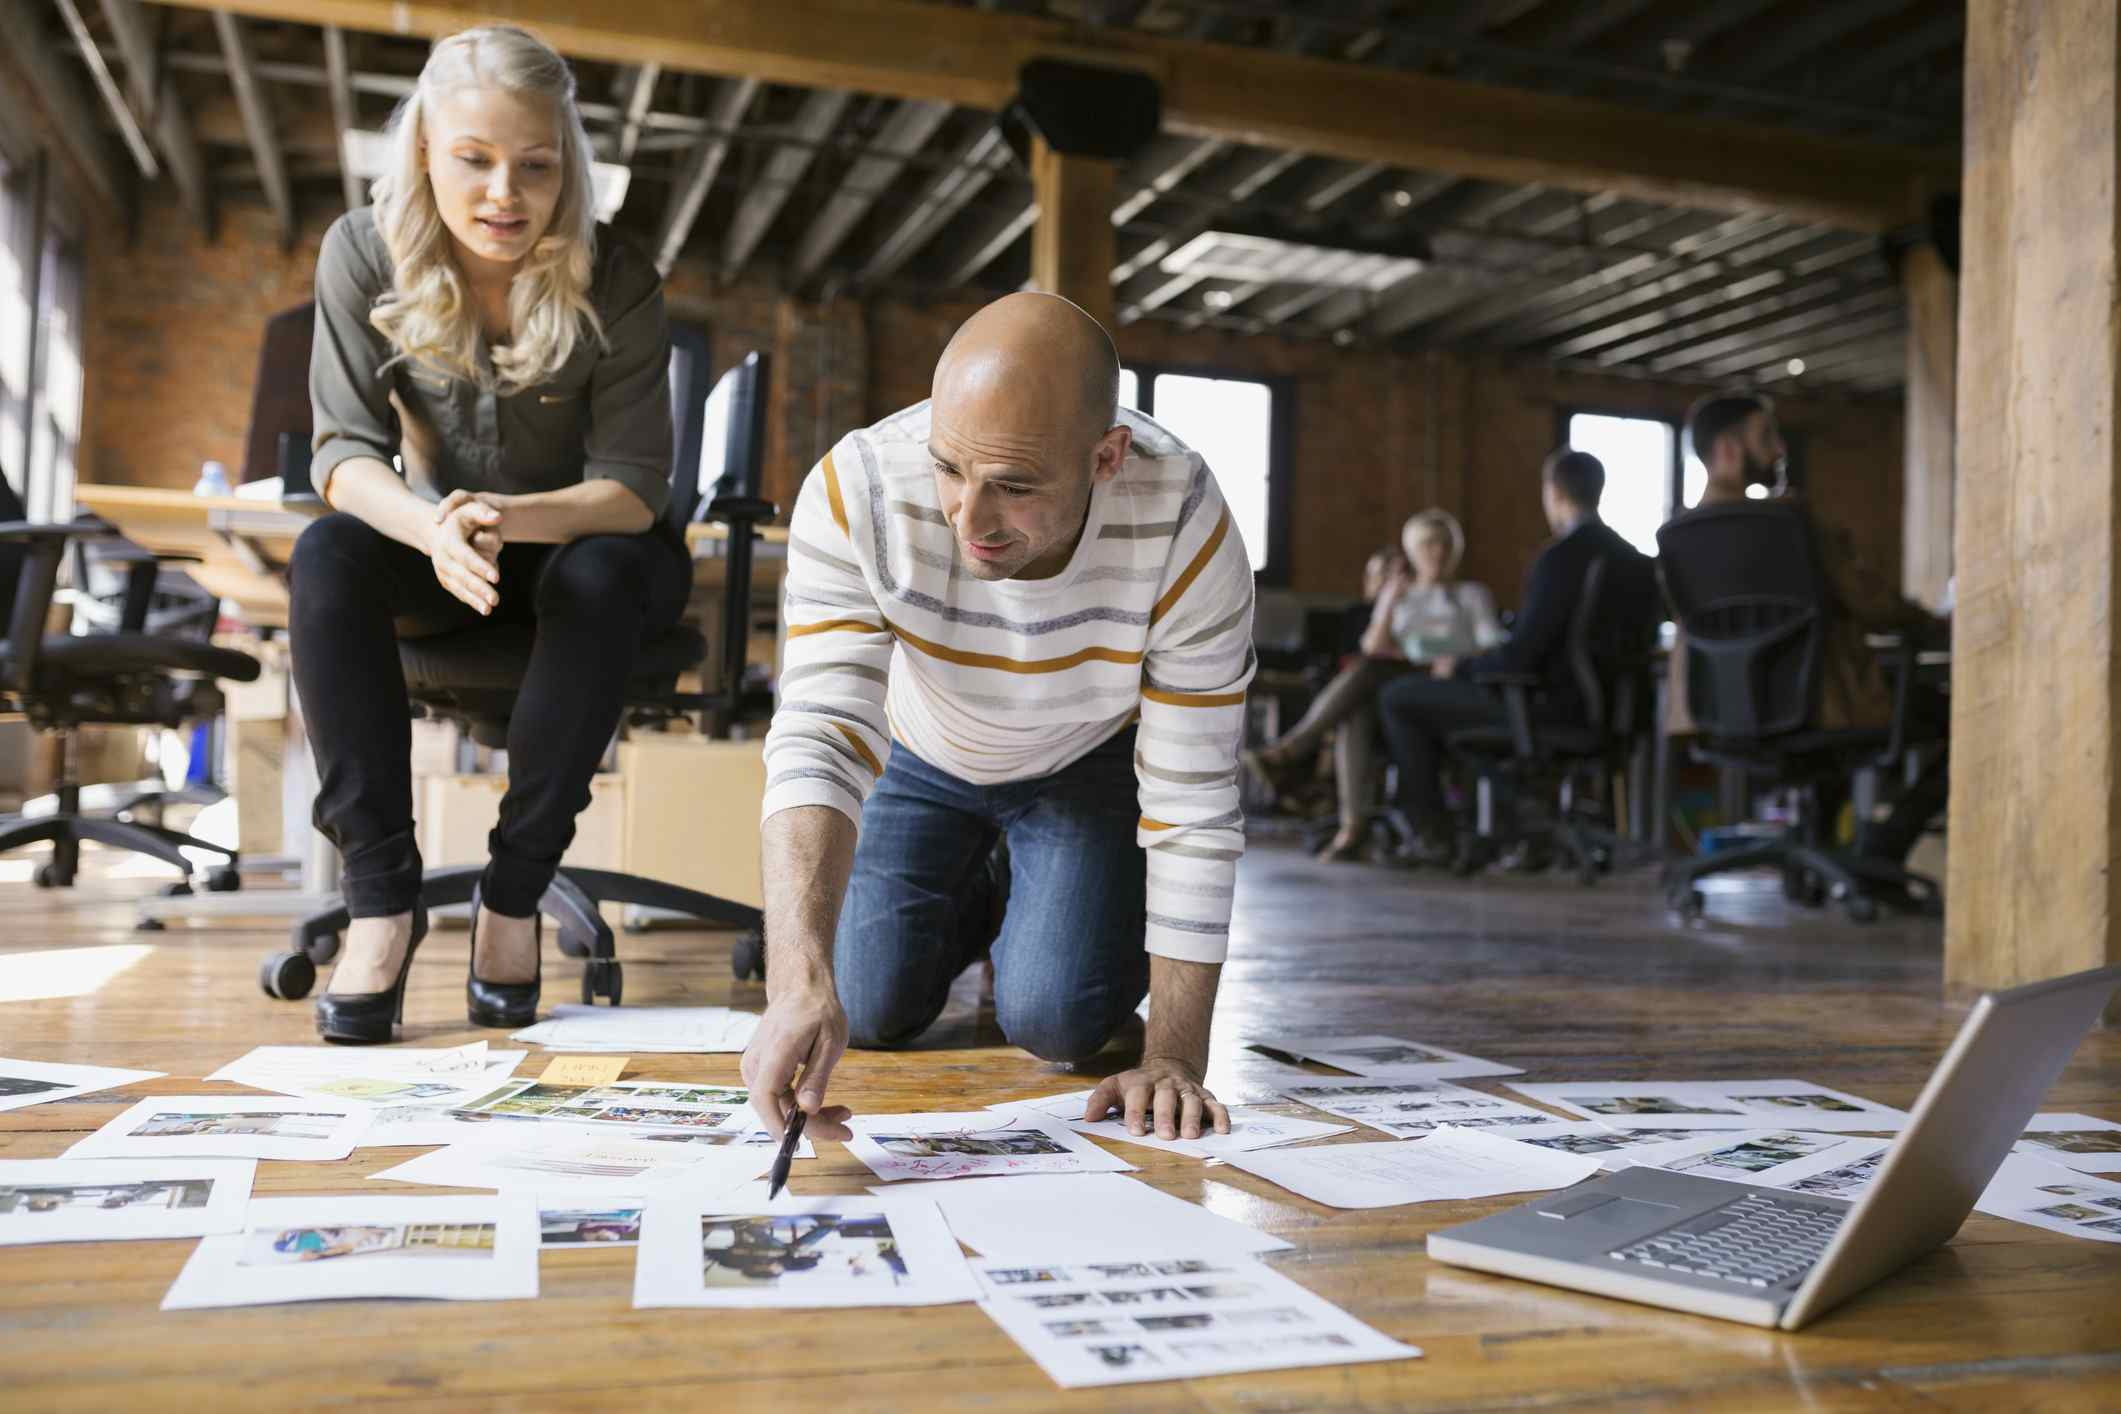 Man and woman looking at printed images on the floor of an office